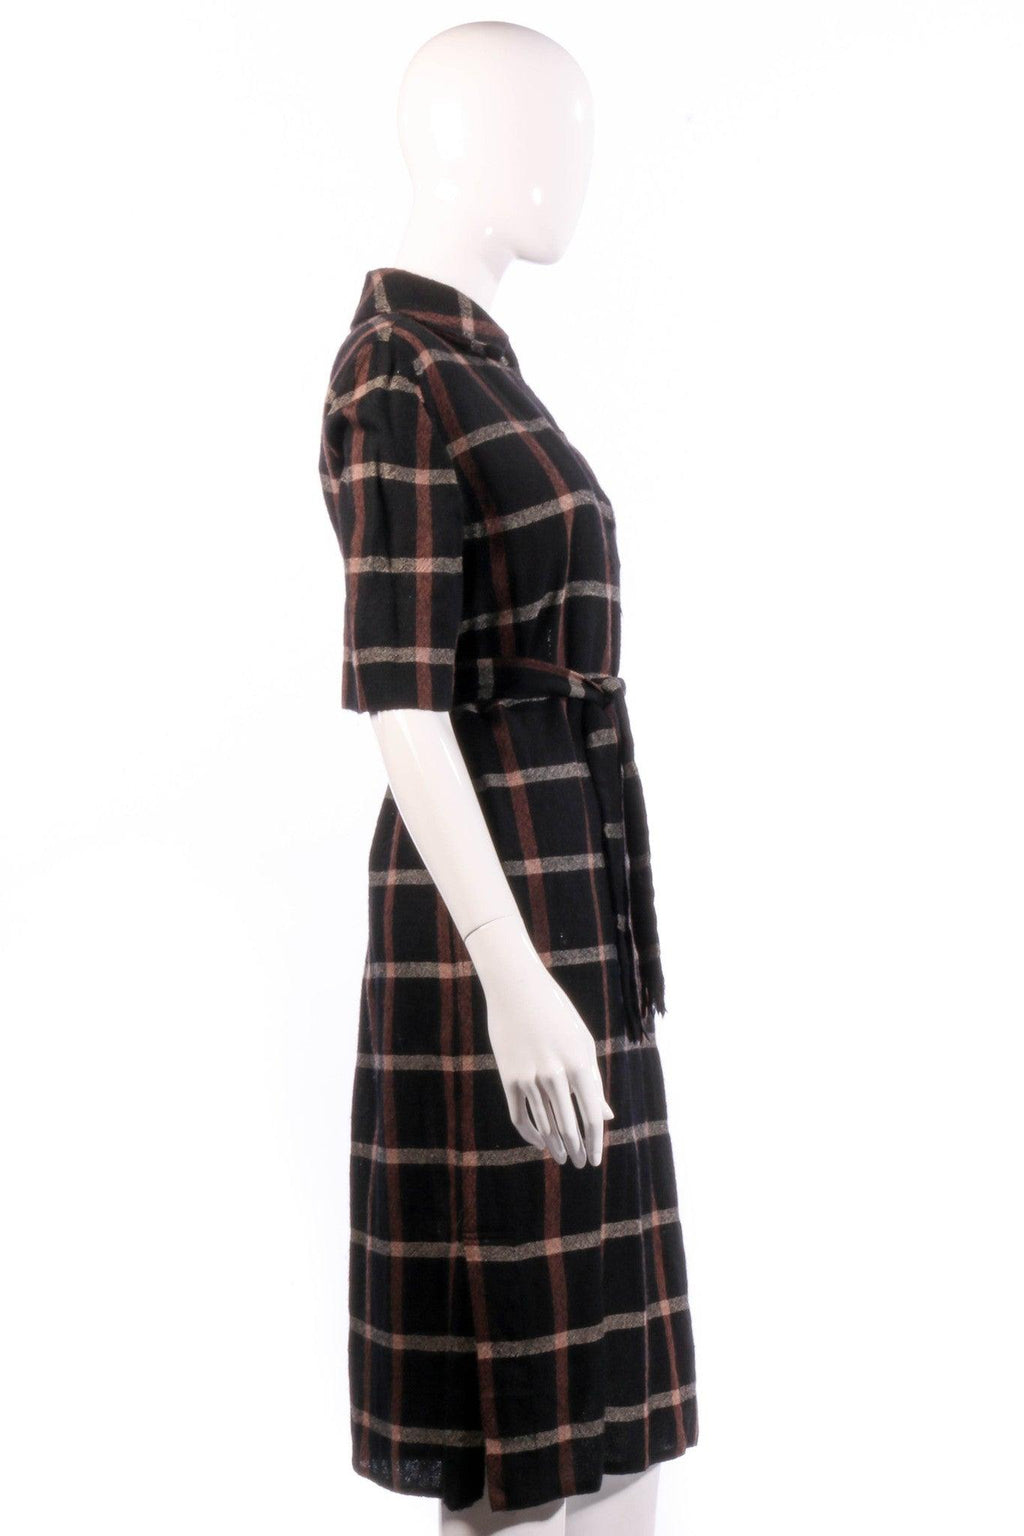 Donald Davies black and red checked dress size 14 side